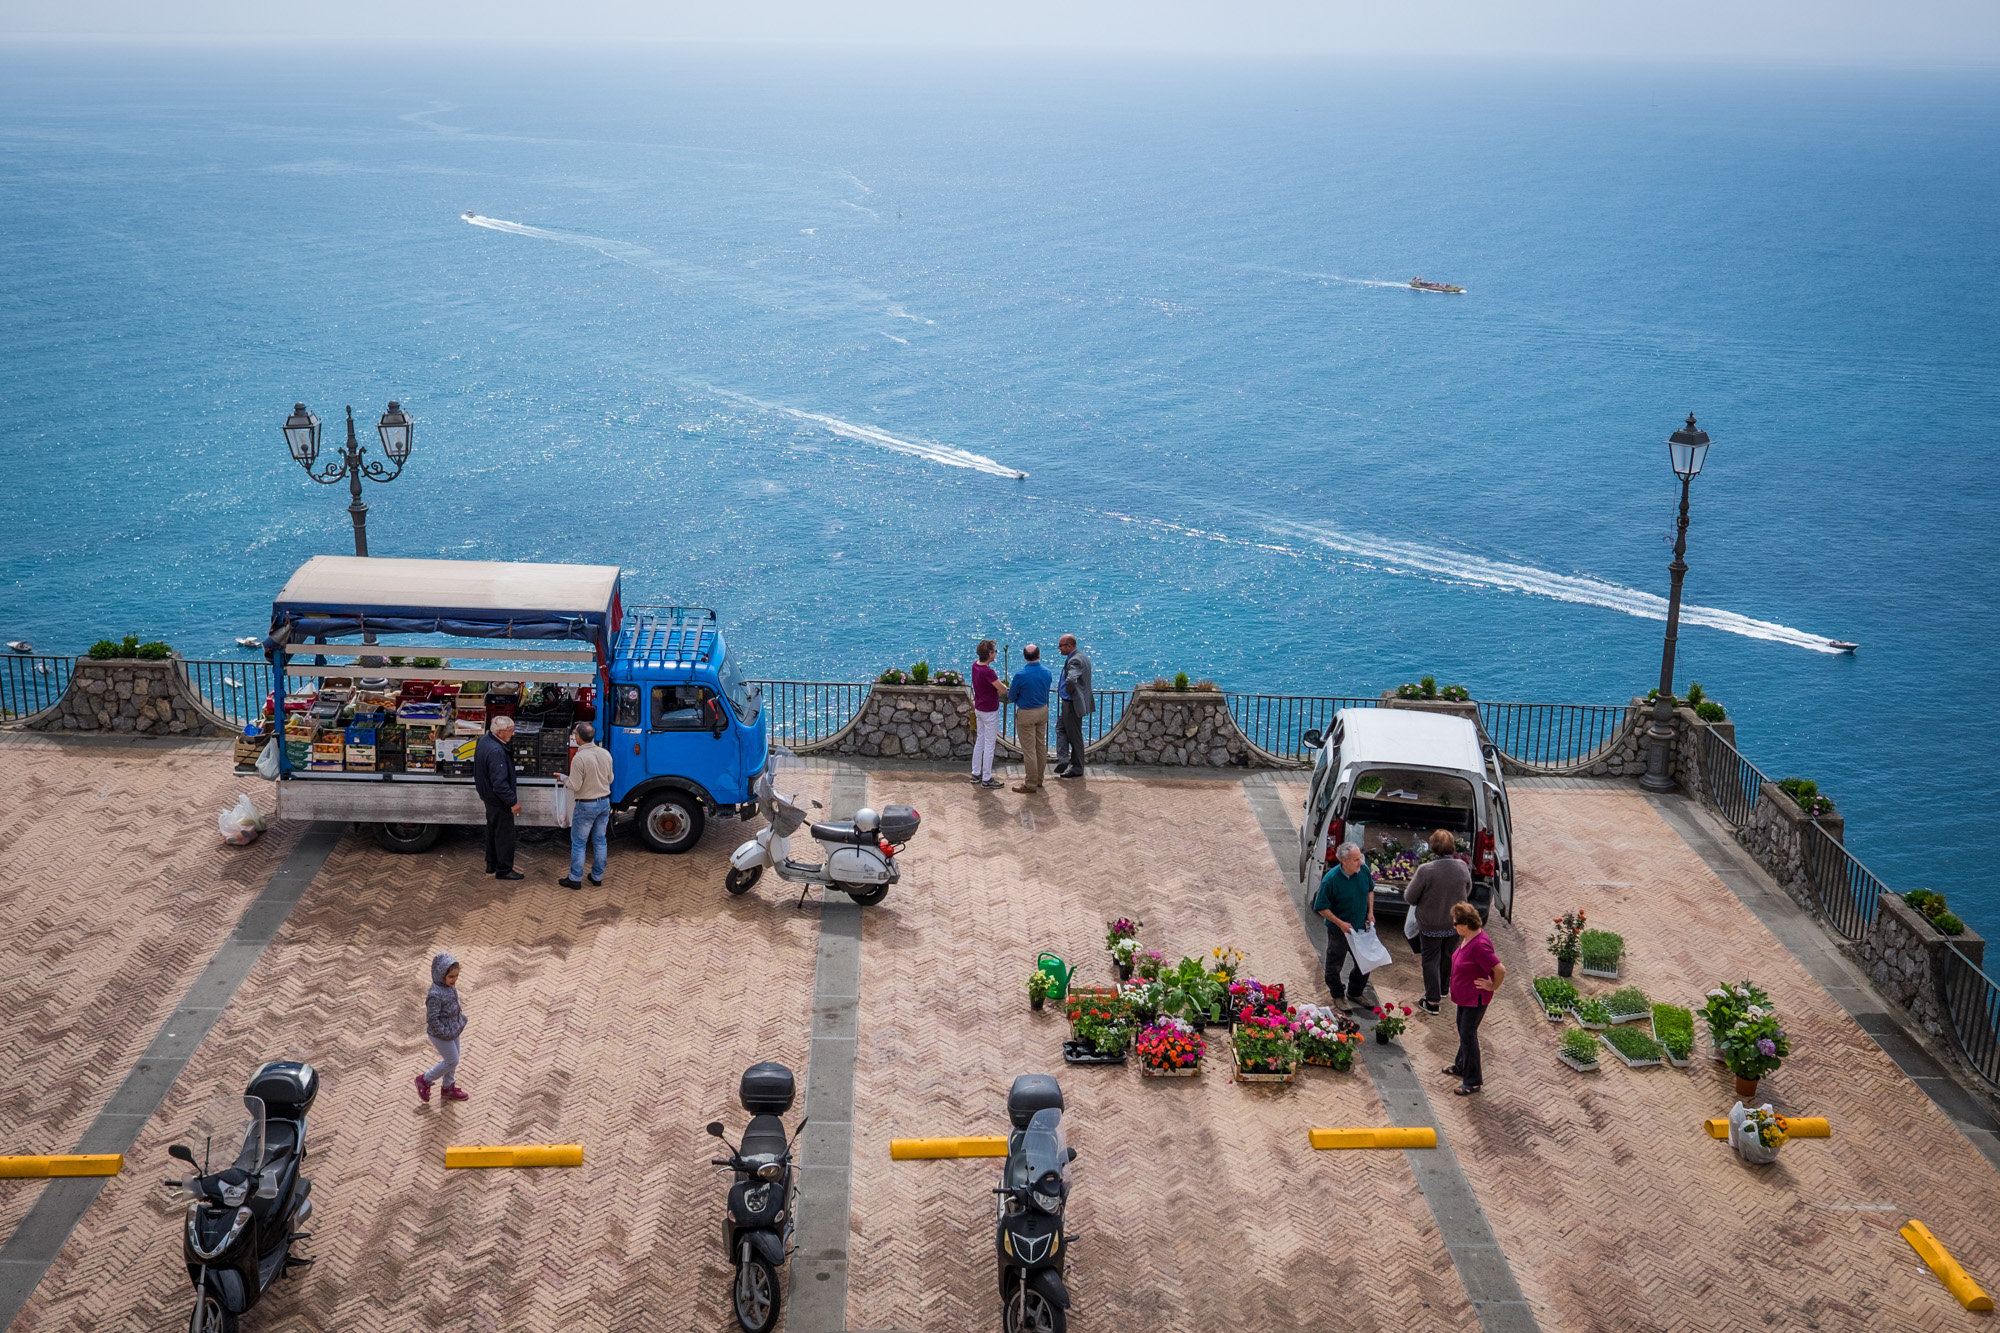 ITALY, Praiano: People gather at a market as boats sail past in the Mediterranean Sea.